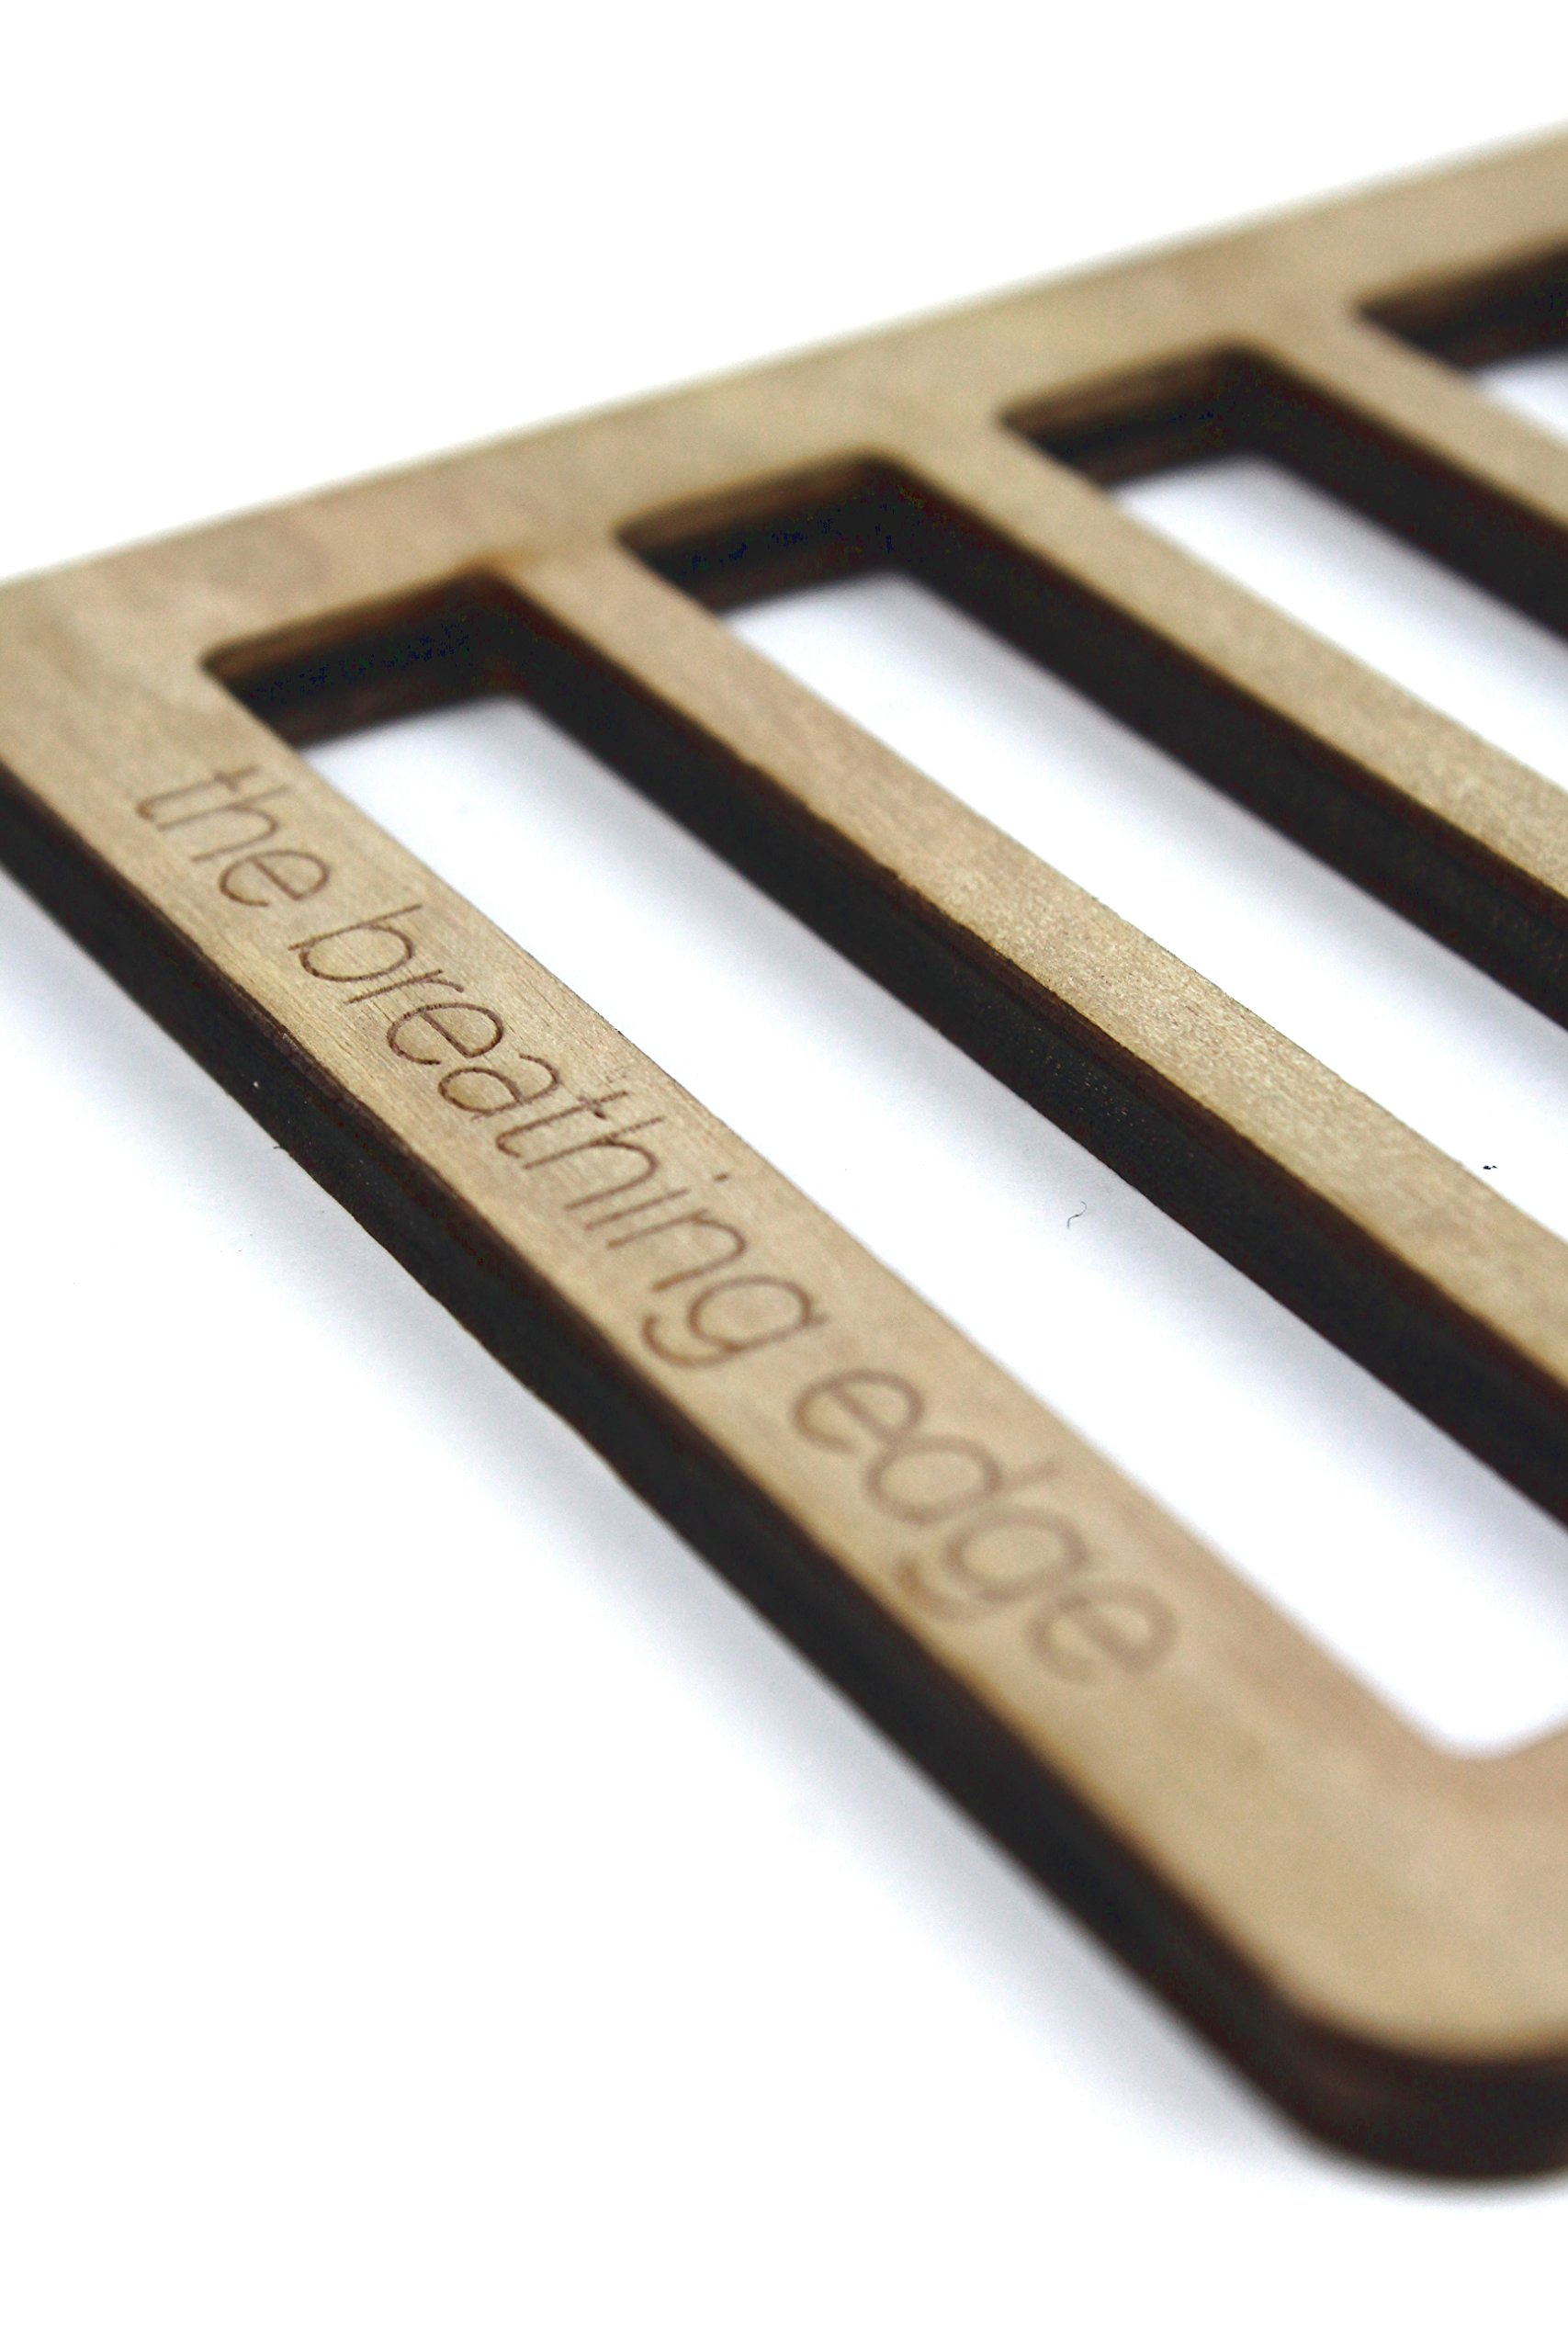 Belt Hanger (Two Hangers) by the breathing edge (Image #3)